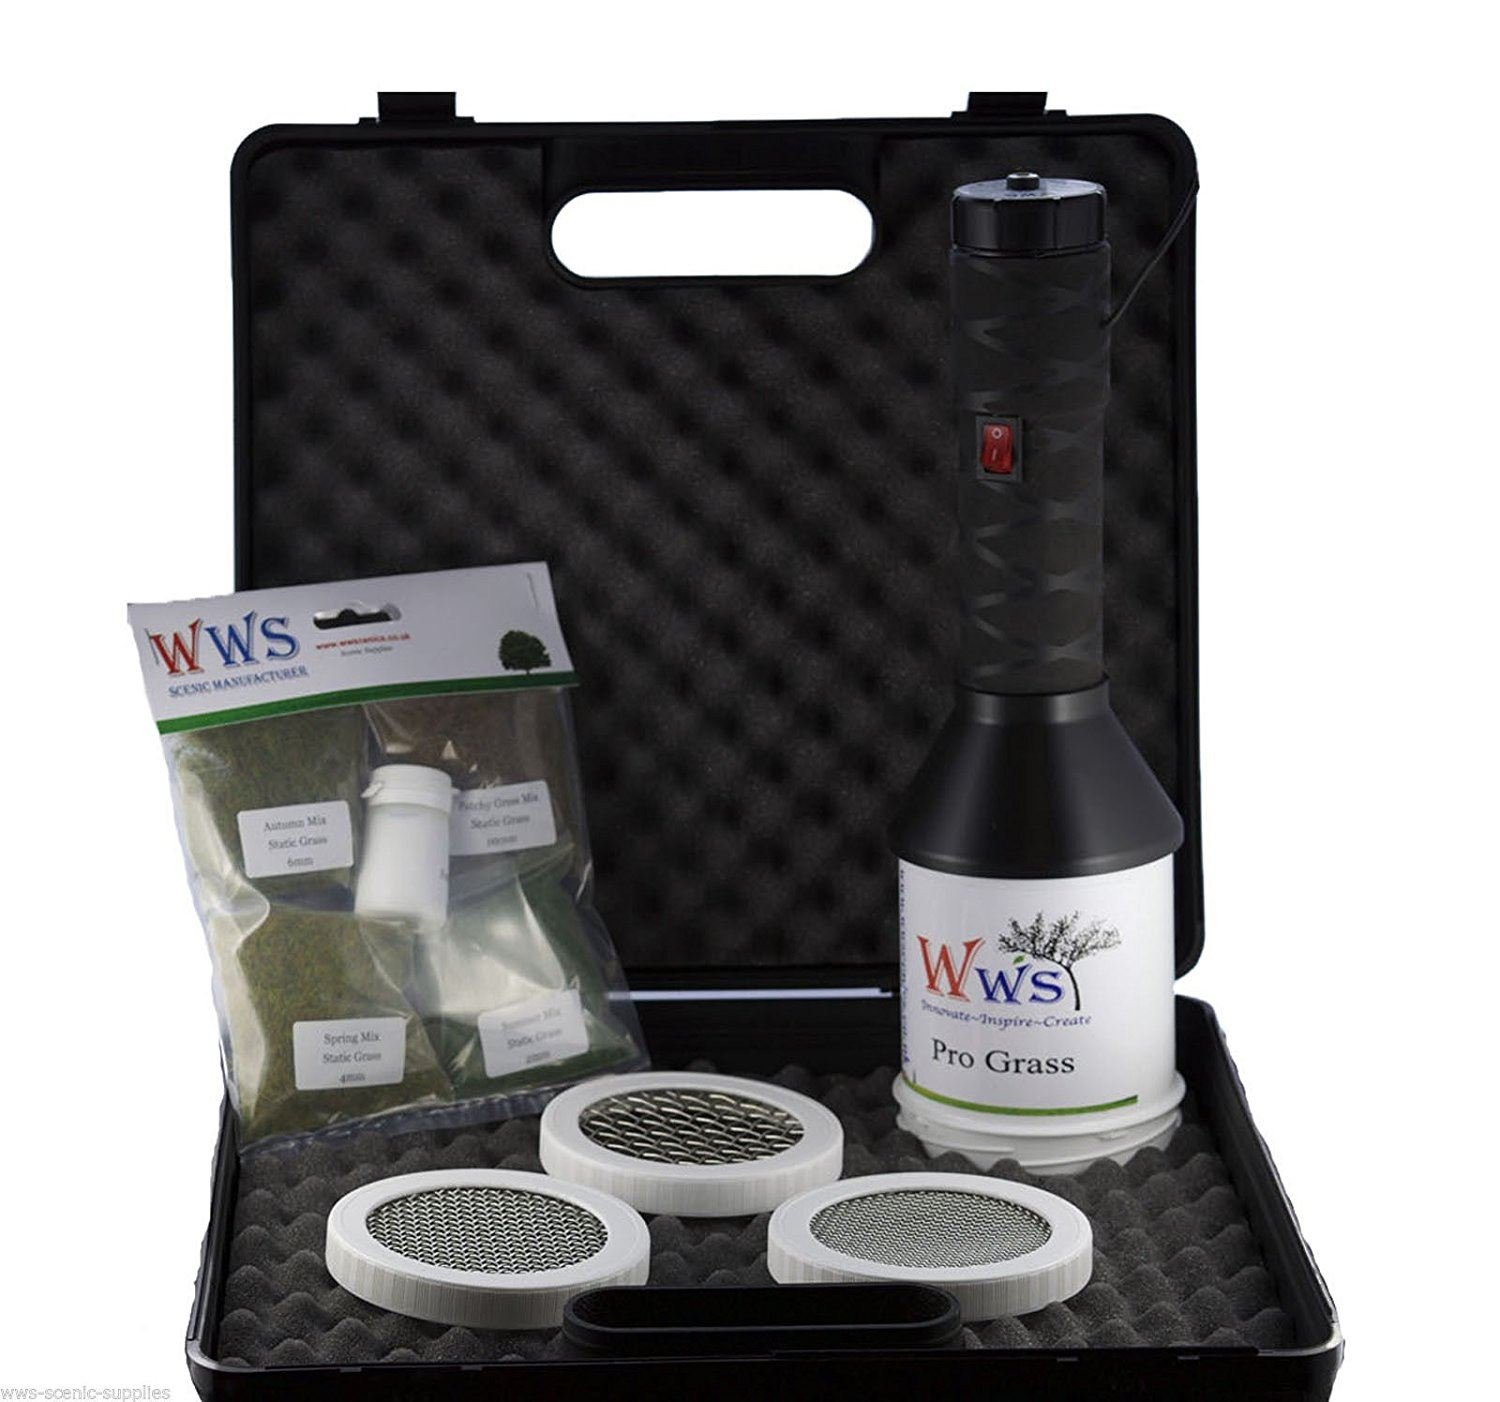 Pro Grass Applicator Static Grass Starter Kit by WWS by WWS Scenic Manufacturer